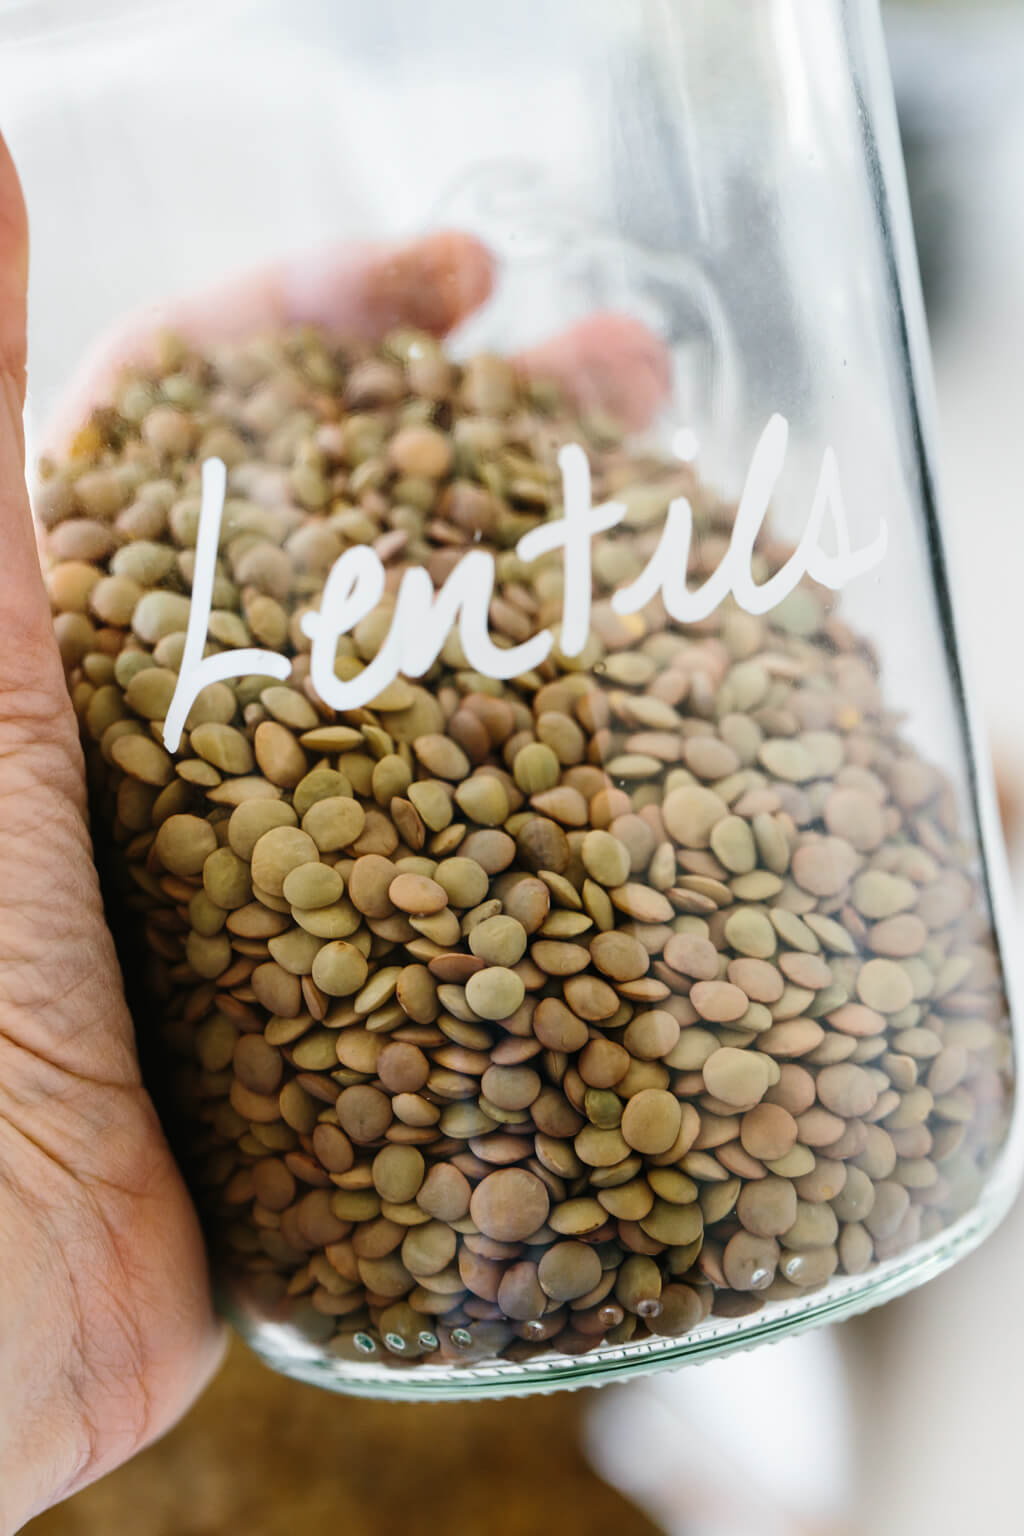 How to cook lentils perfectly. Lentils are small legumes loaded with plant-based protein and nutrients and they're delicious in a variety of healthy recipes.